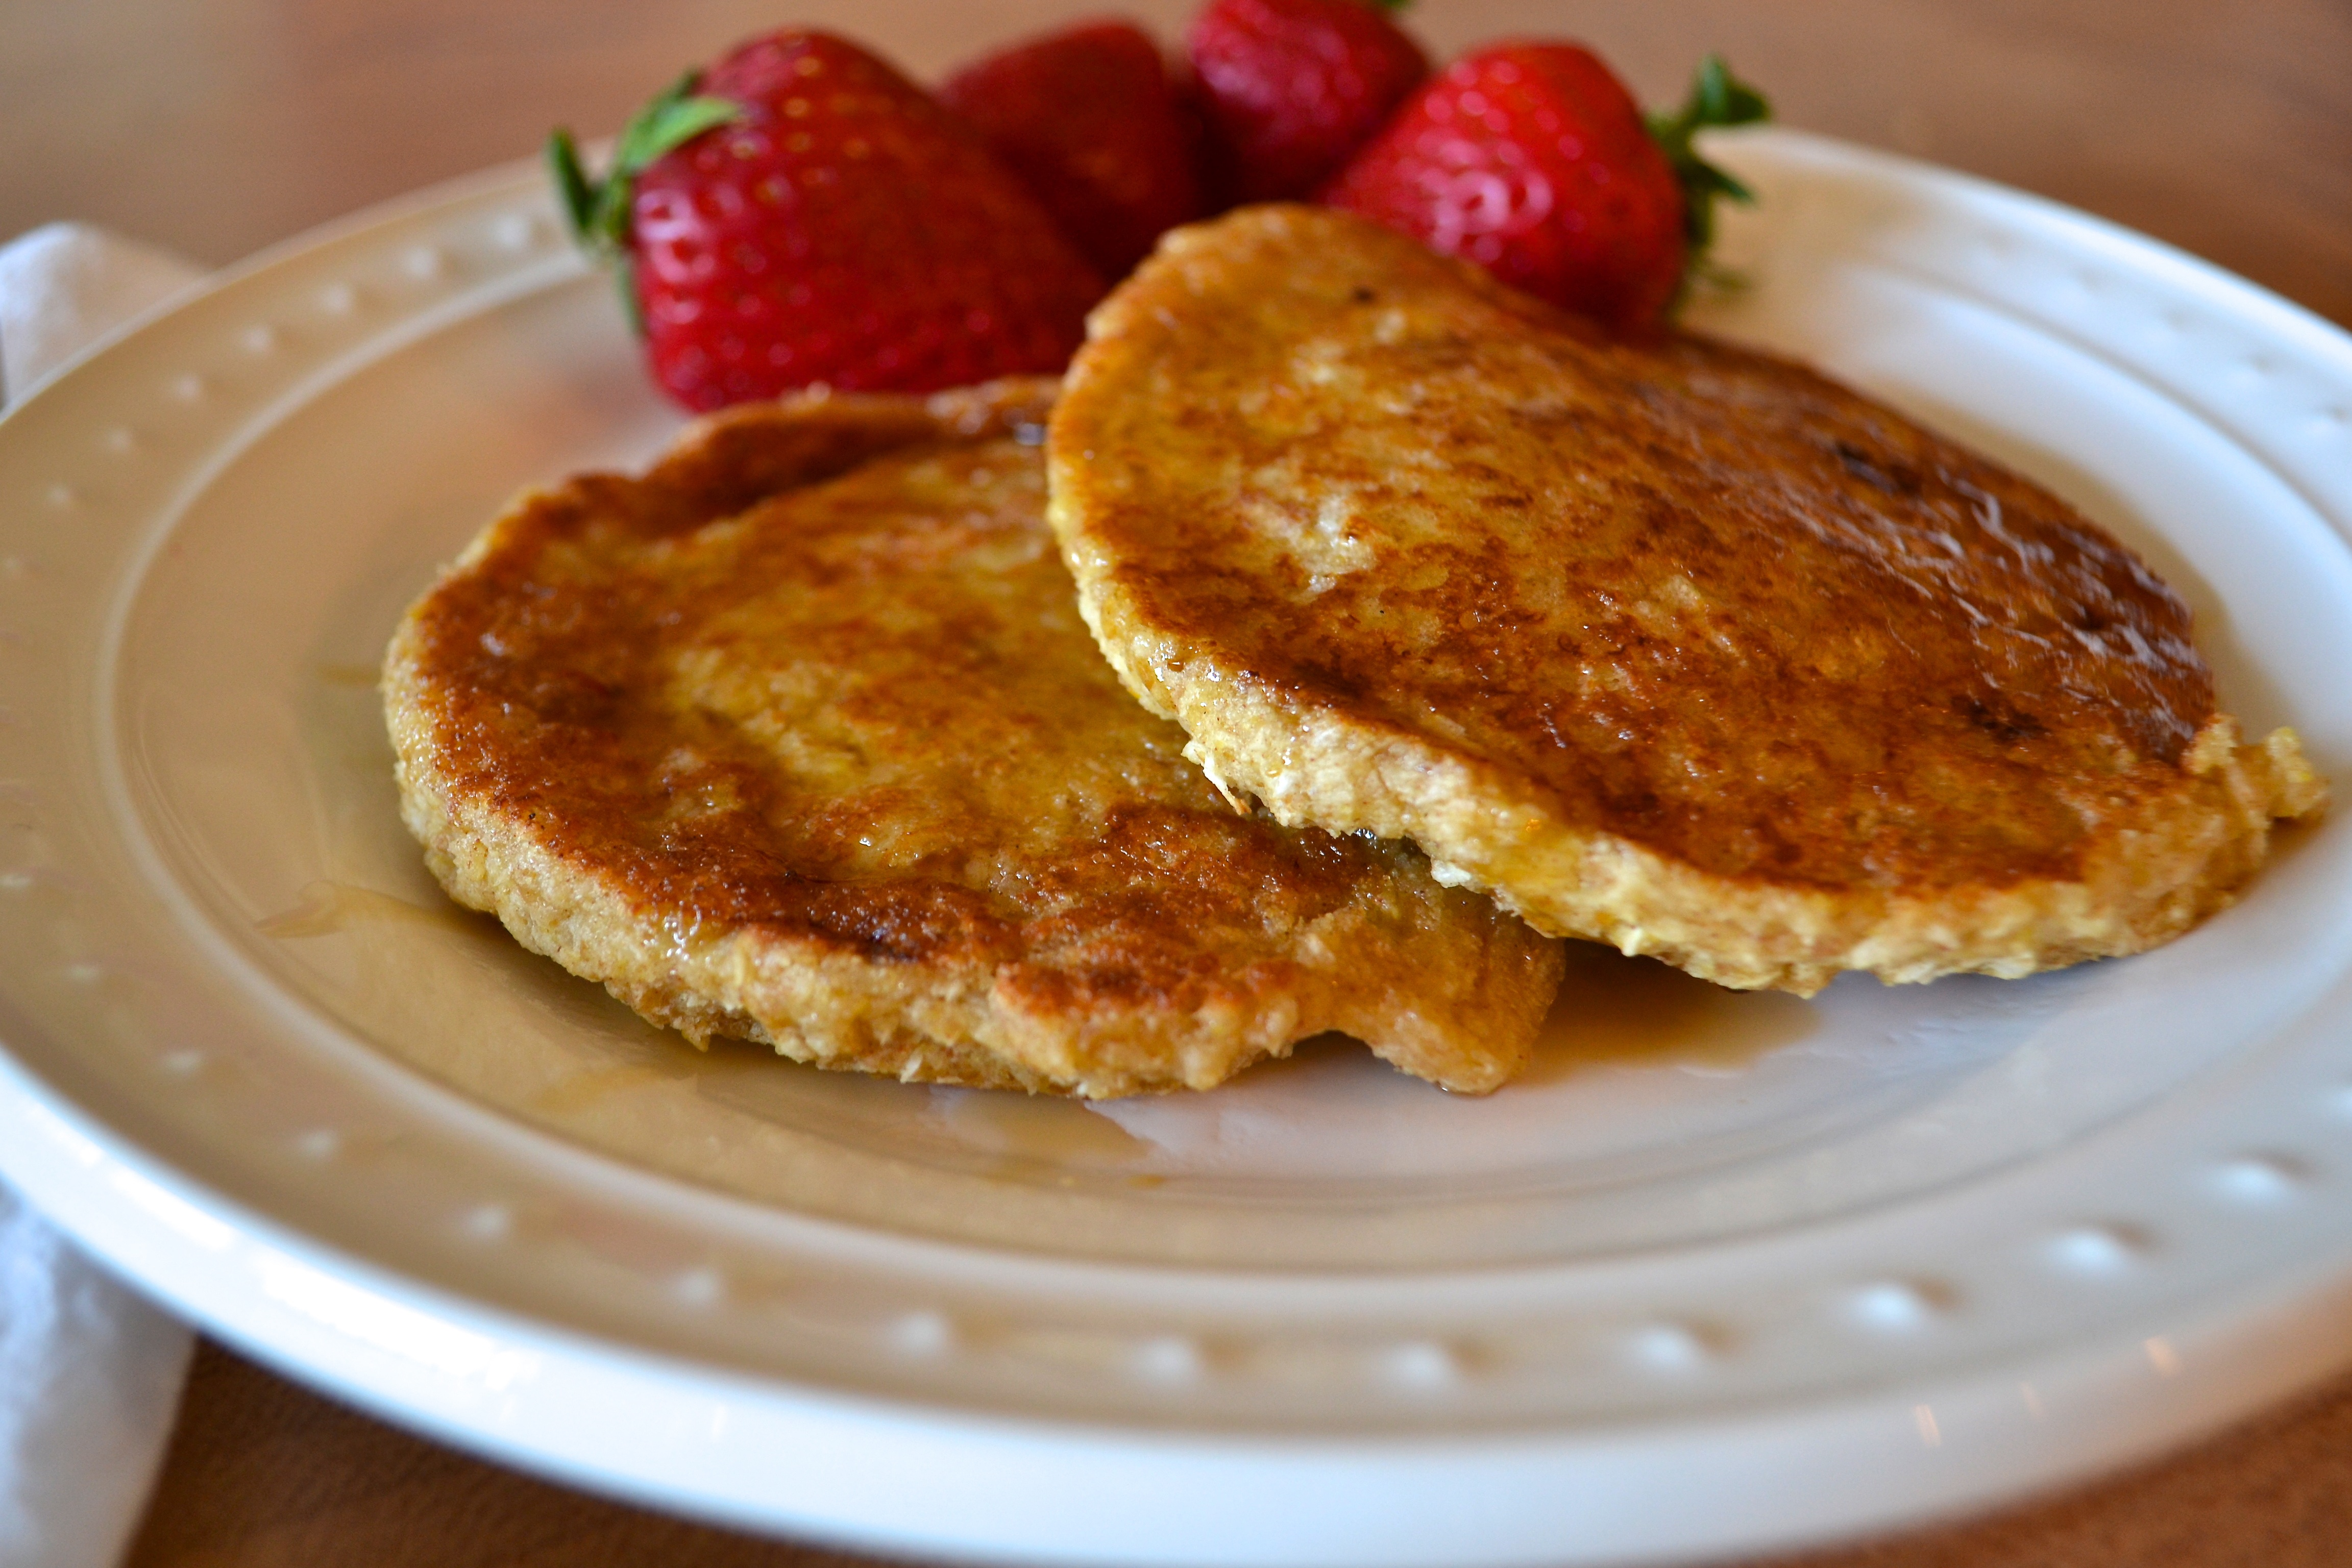 Banana oat pancake eat well be well live well banana oat pancakes 2 ccuart Gallery